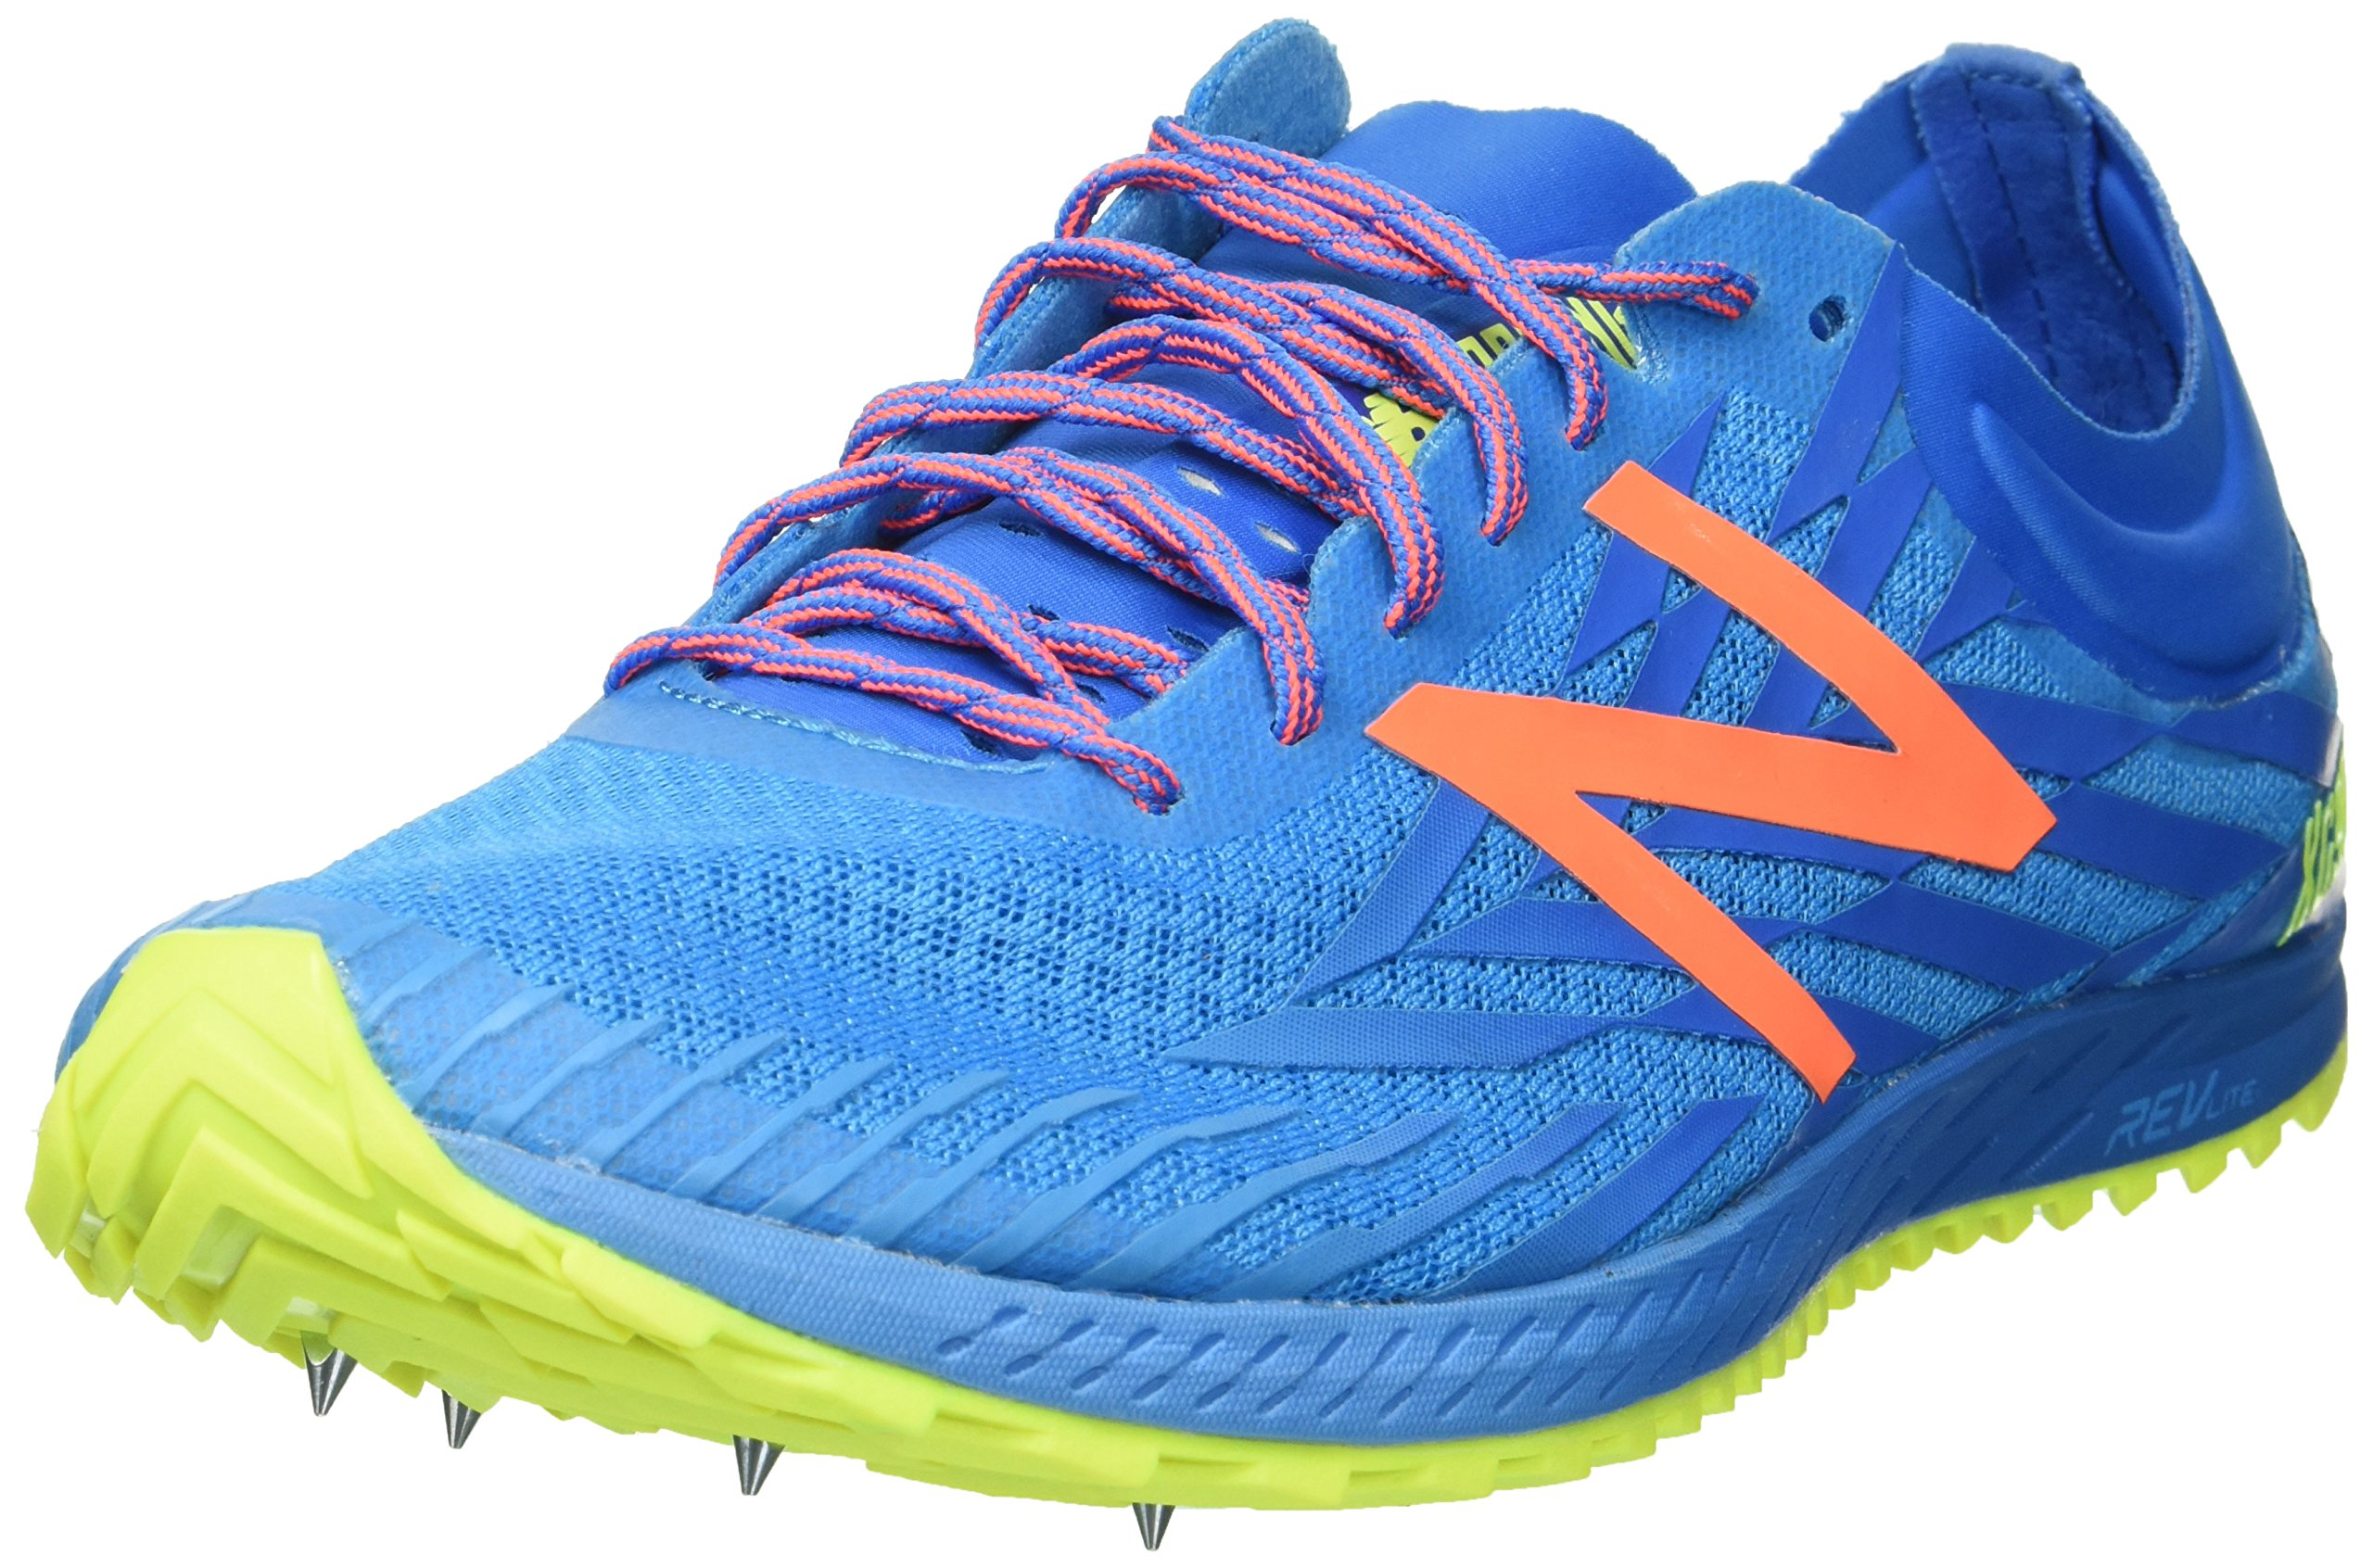 New Balance Women's 9004 Cross Country Running Shoe, Bright Blue/Yellow, 7 B US by New Balance